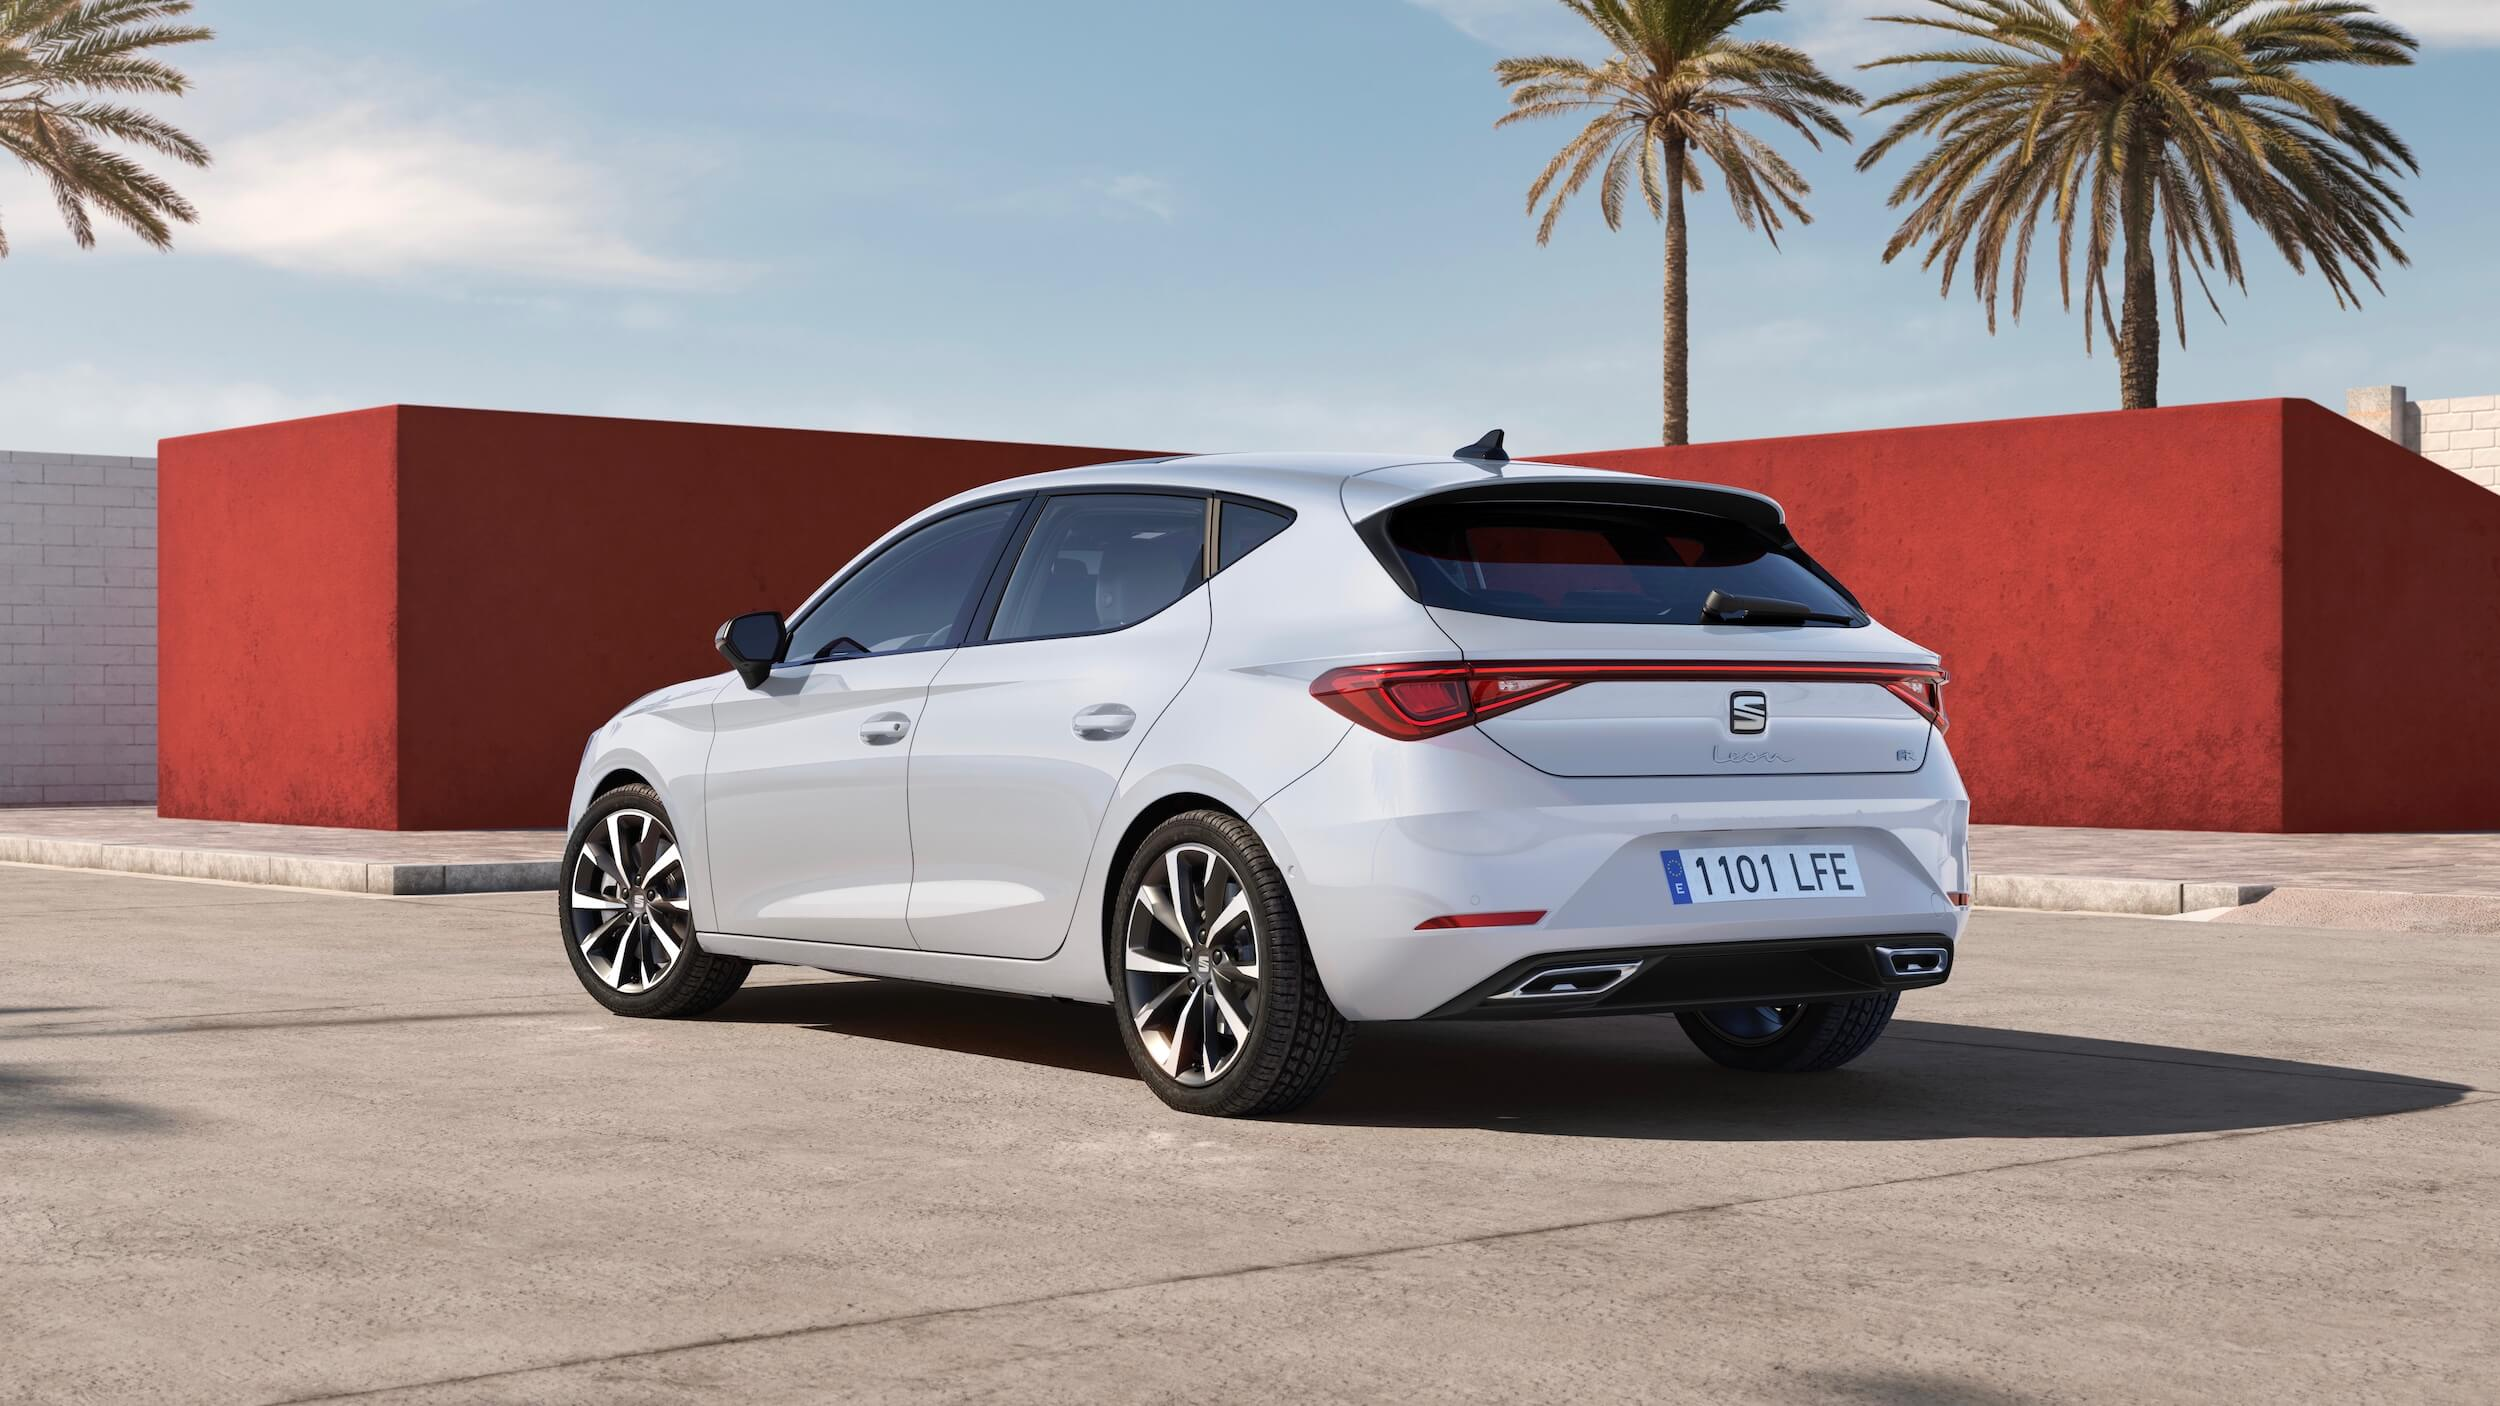 Seat Leon CNG